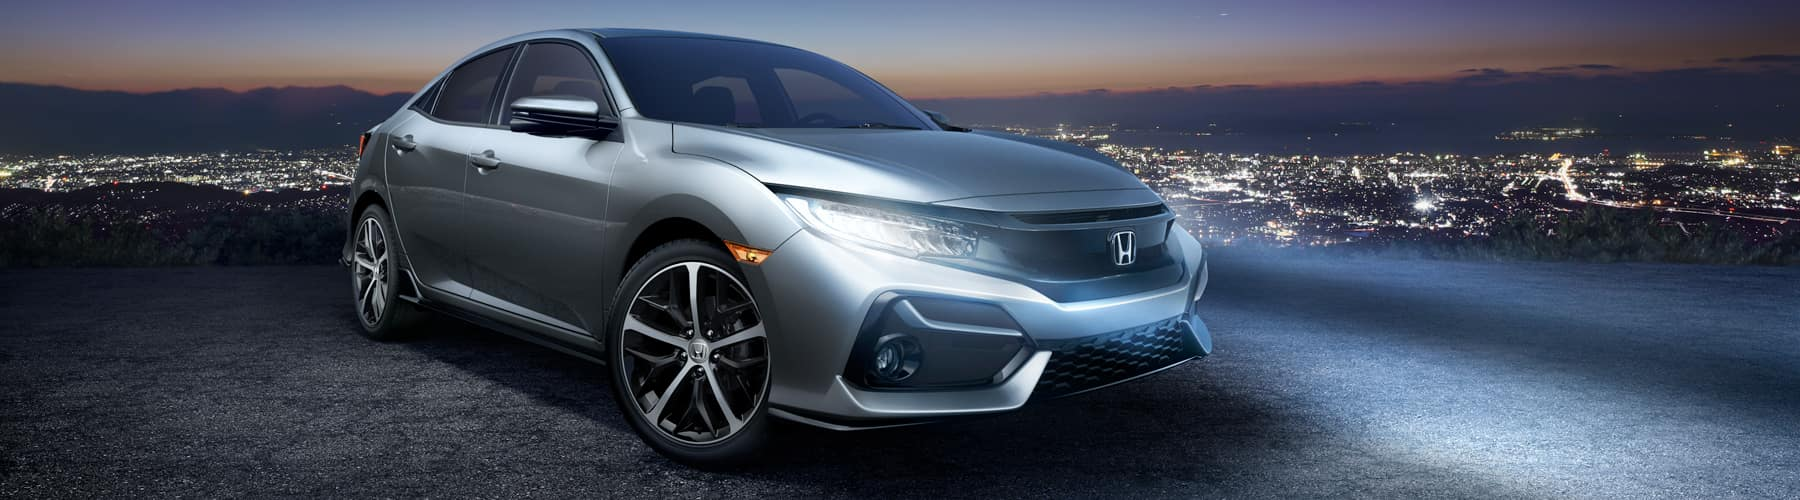 2020 Honda Civic Hatchback Slider